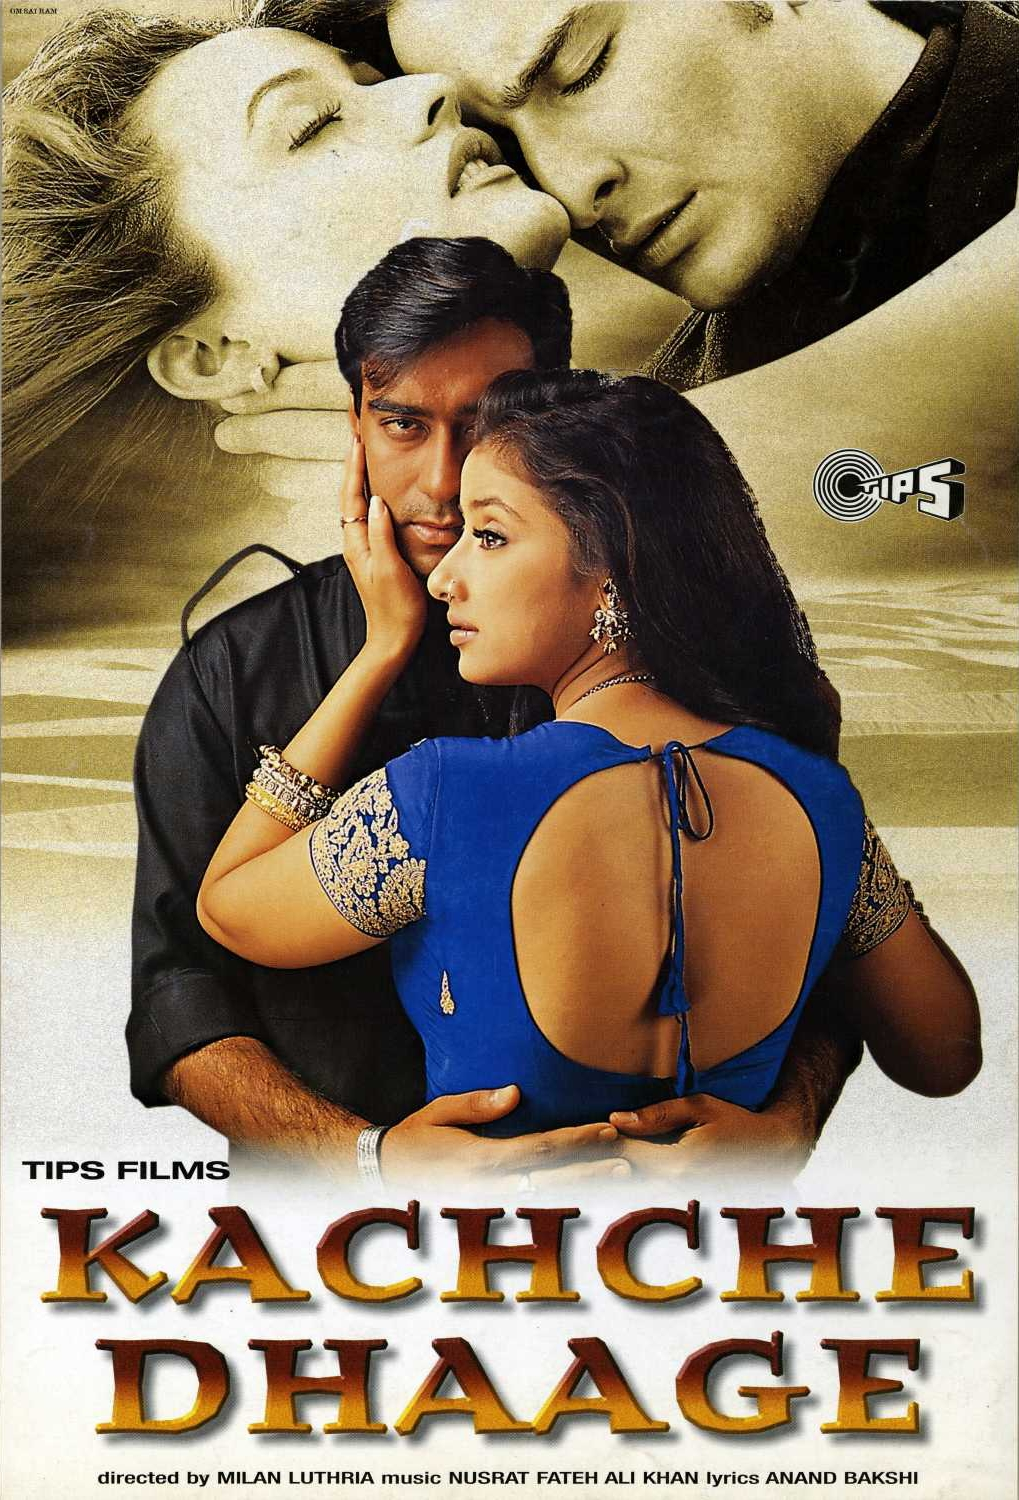 Kachche dhaage movie hd video song download